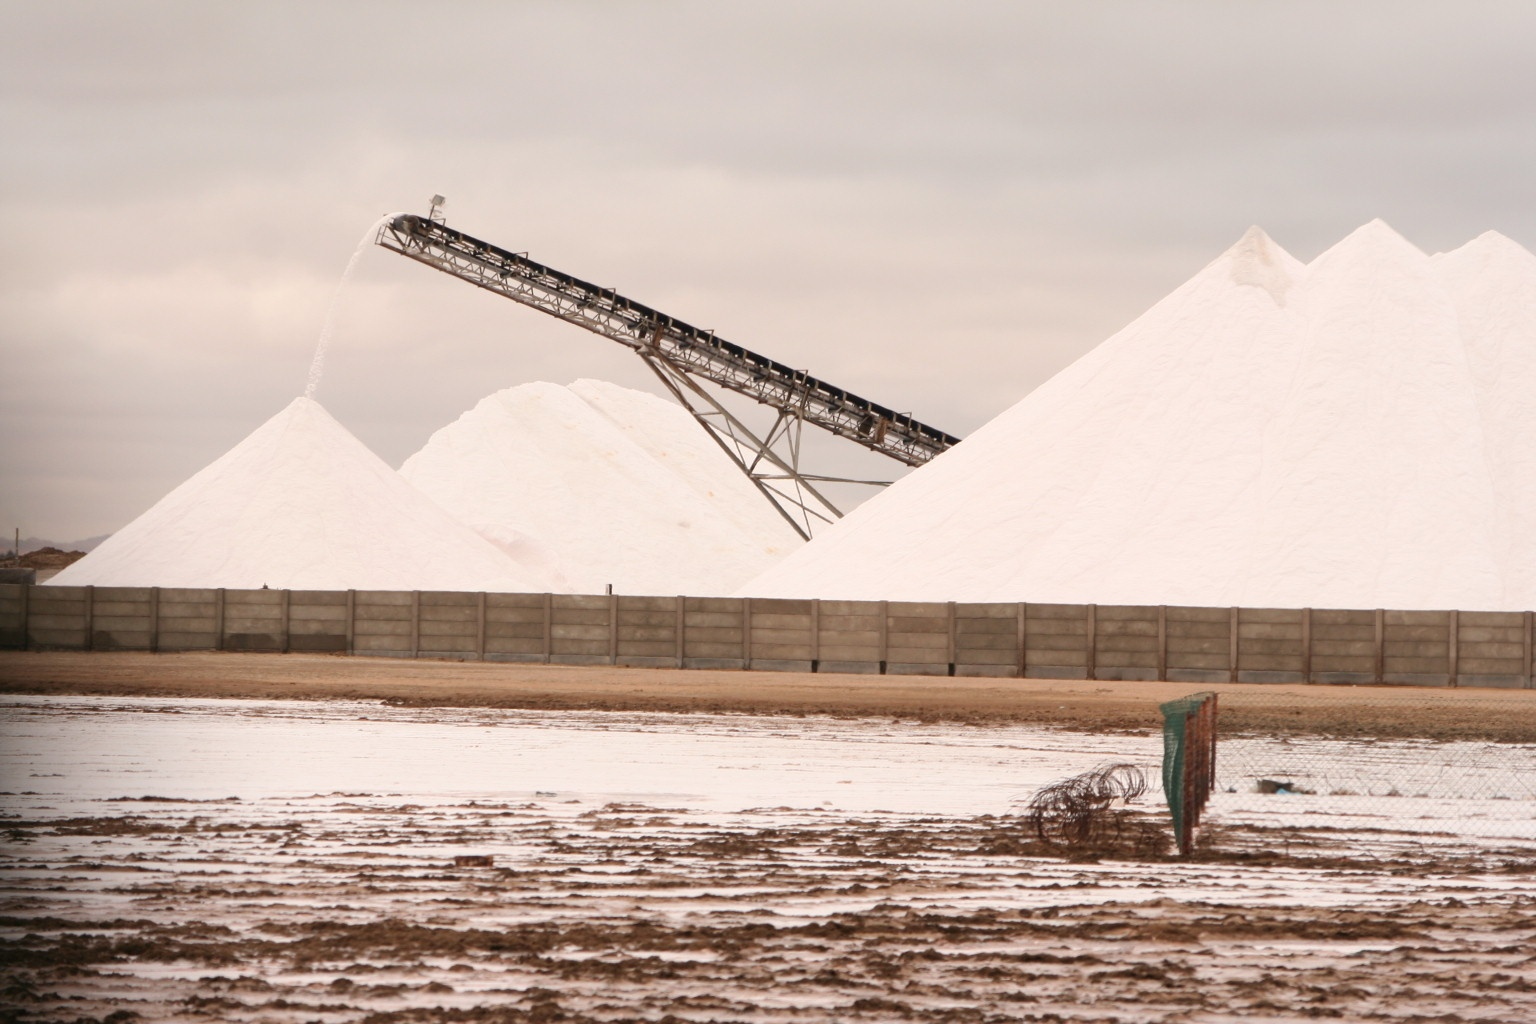 Saltworks near Walvis Bay